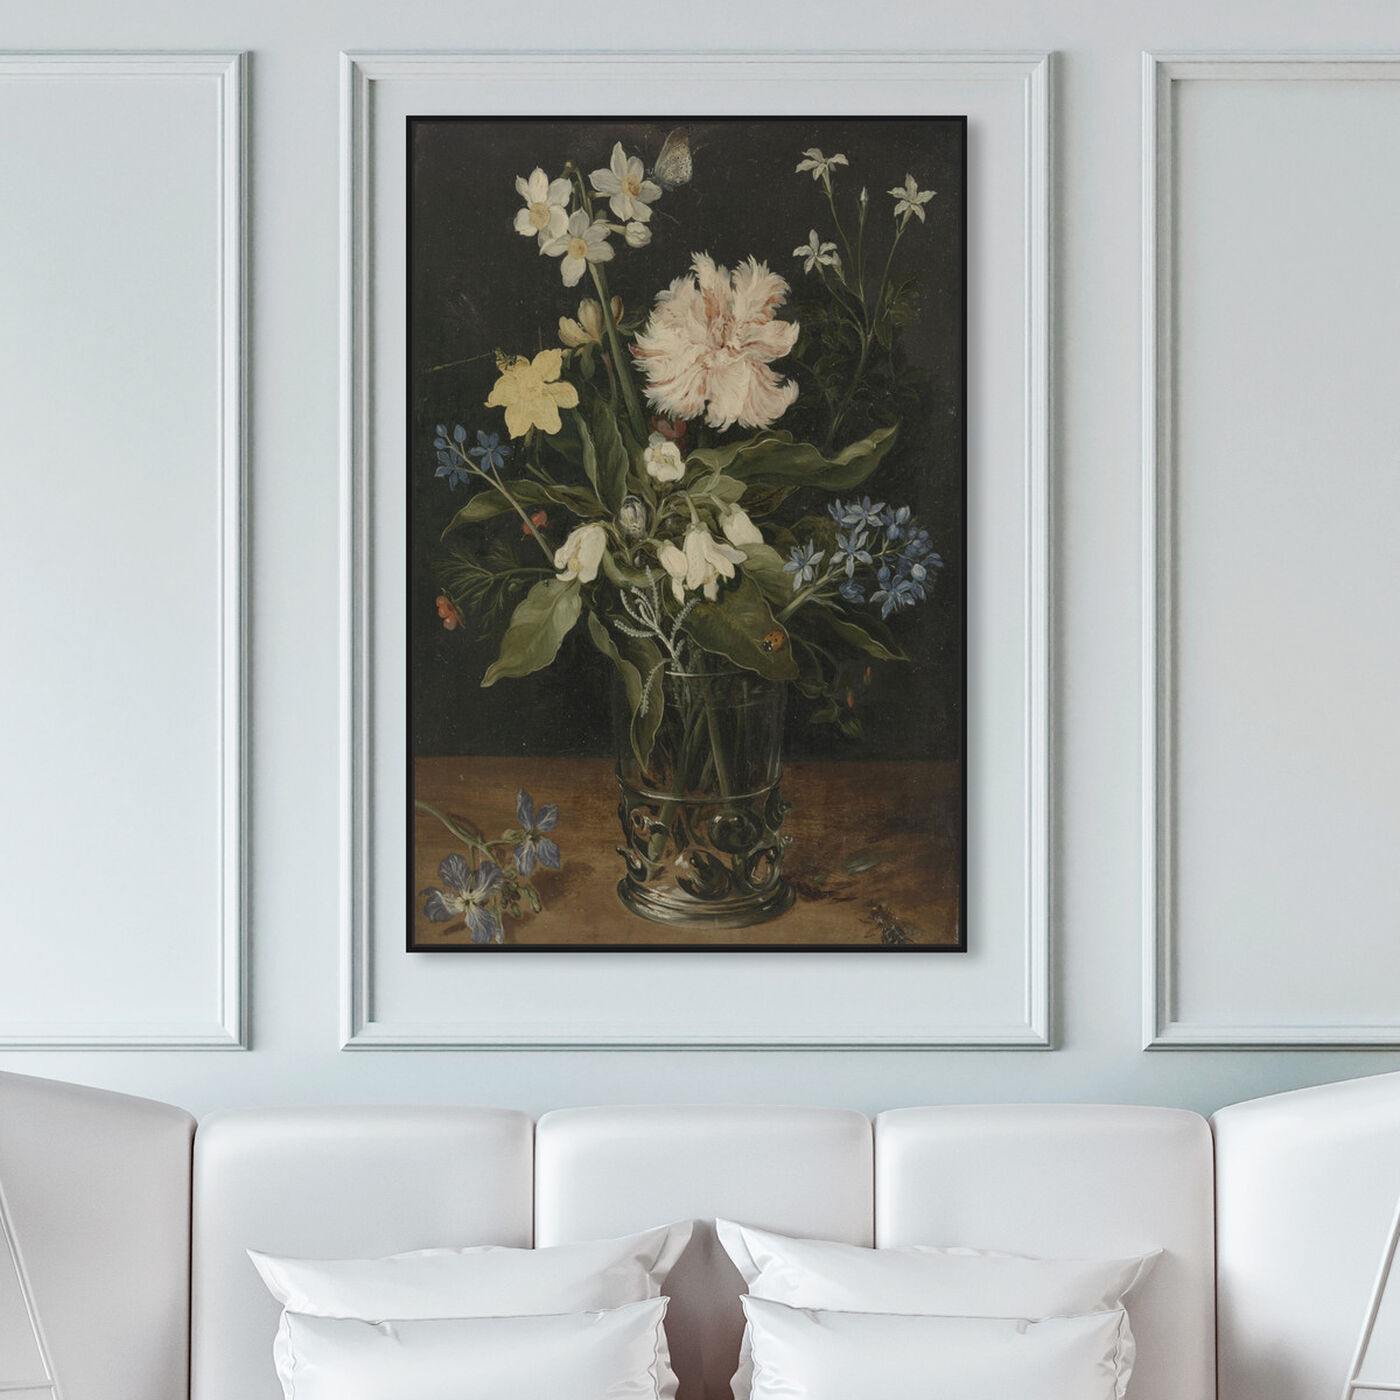 Hanging view of Flower Arrangement VI - The Art Cabinet featuring floral and botanical and florals art.